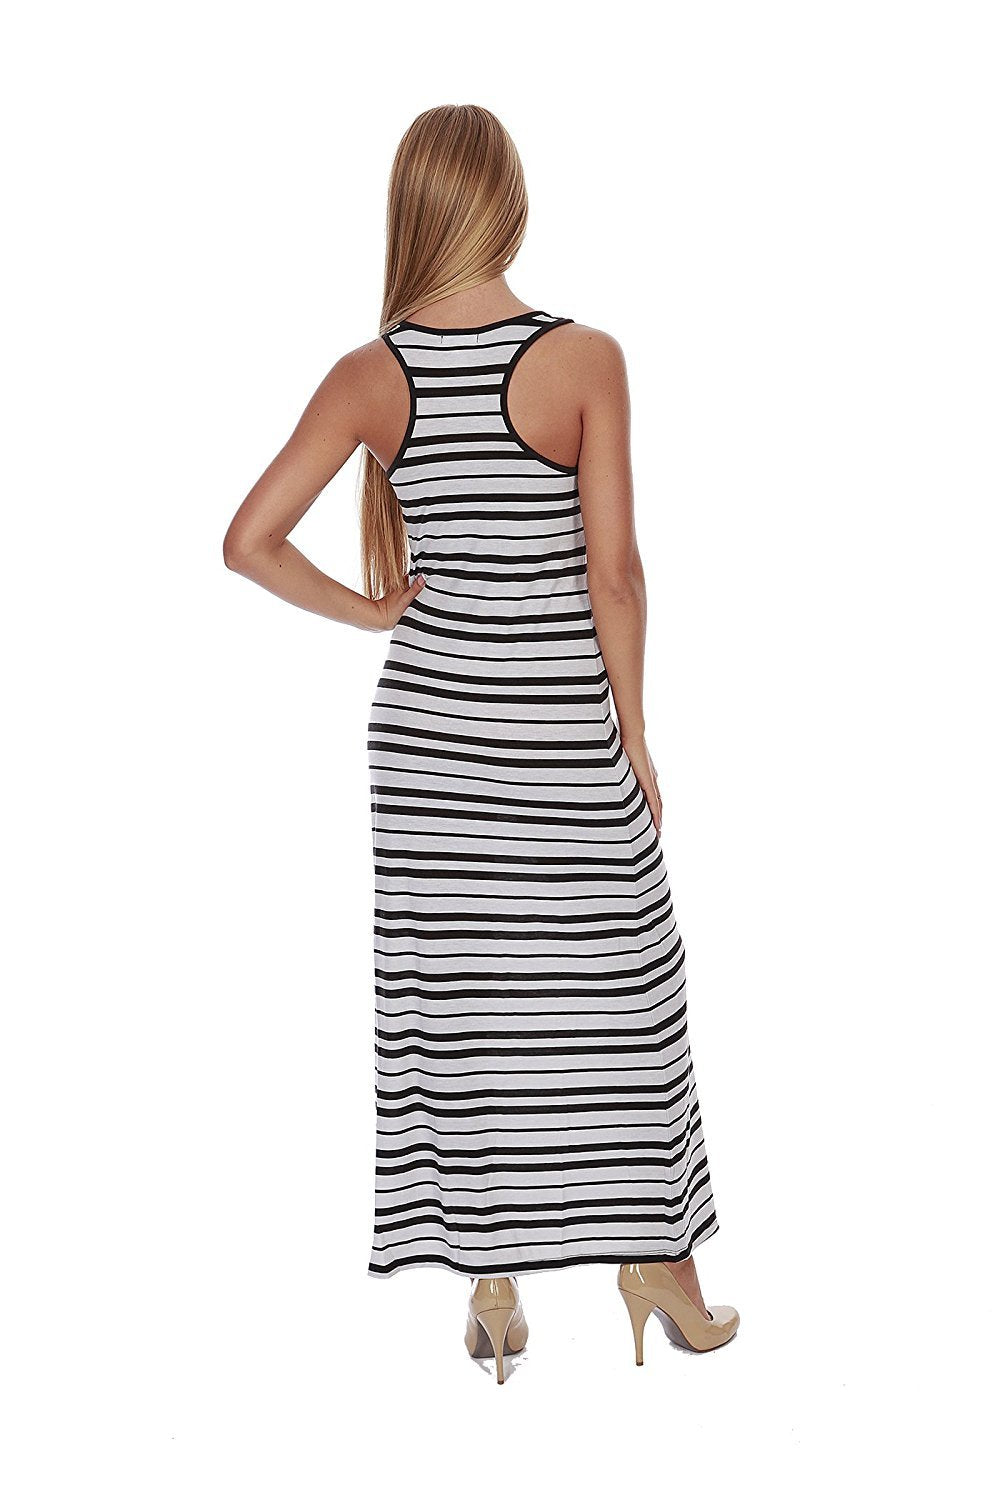 Hollywood Star Fashion Women's Striped Long Full Length Racerback Tank Dress